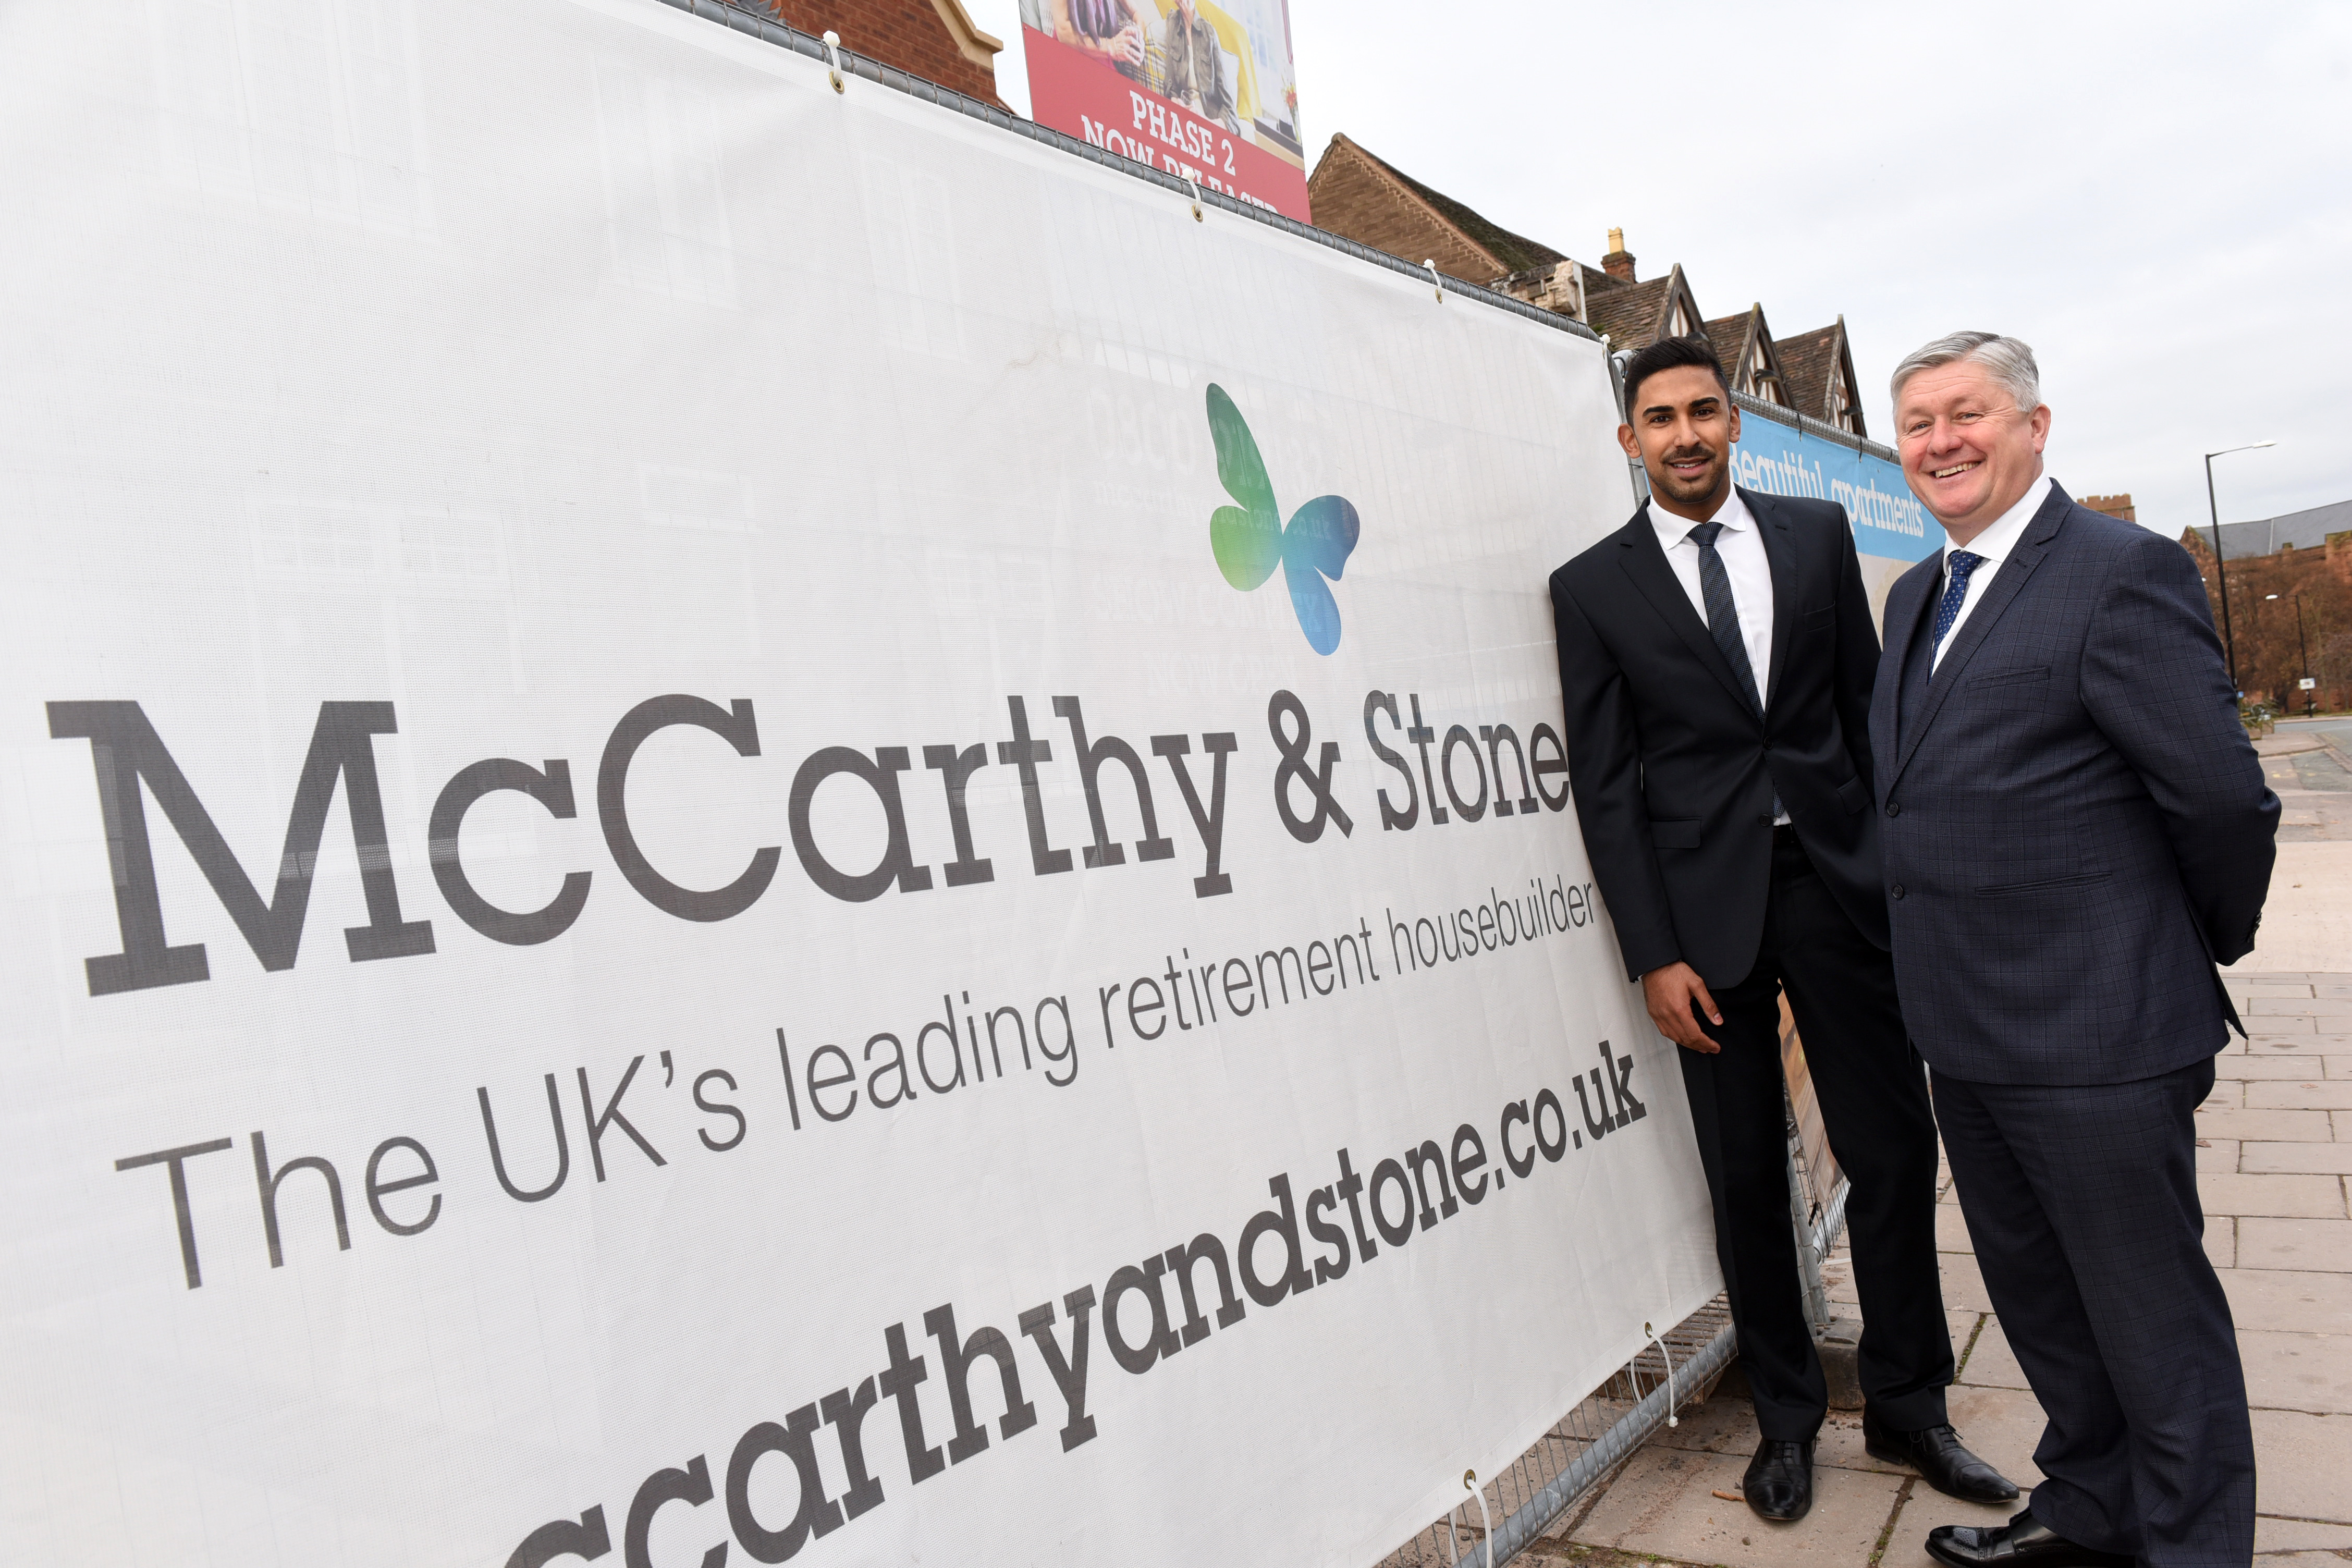 Rexel announces contract with McCarthy & Stone